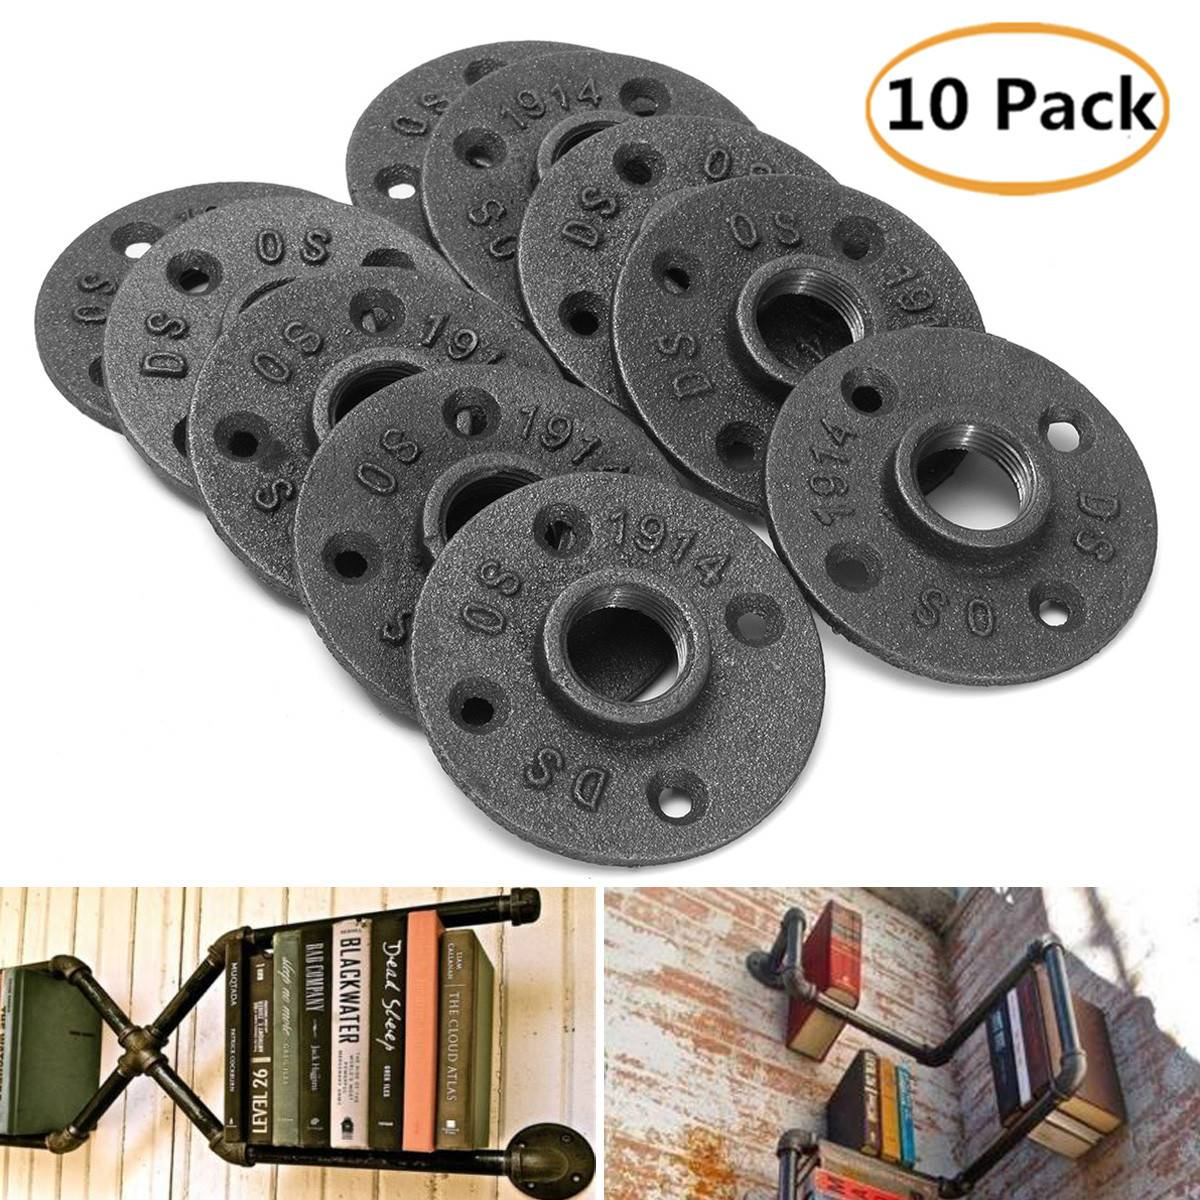 10pcs 3/4 Exhaust Wall Mount Floor Flanges Cast Iron Flanges Thread Malleable Industrial Pipe Fittings Bathroom Shelves Tools10pcs 3/4 Exhaust Wall Mount Floor Flanges Cast Iron Flanges Thread Malleable Industrial Pipe Fittings Bathroom Shelves Tools